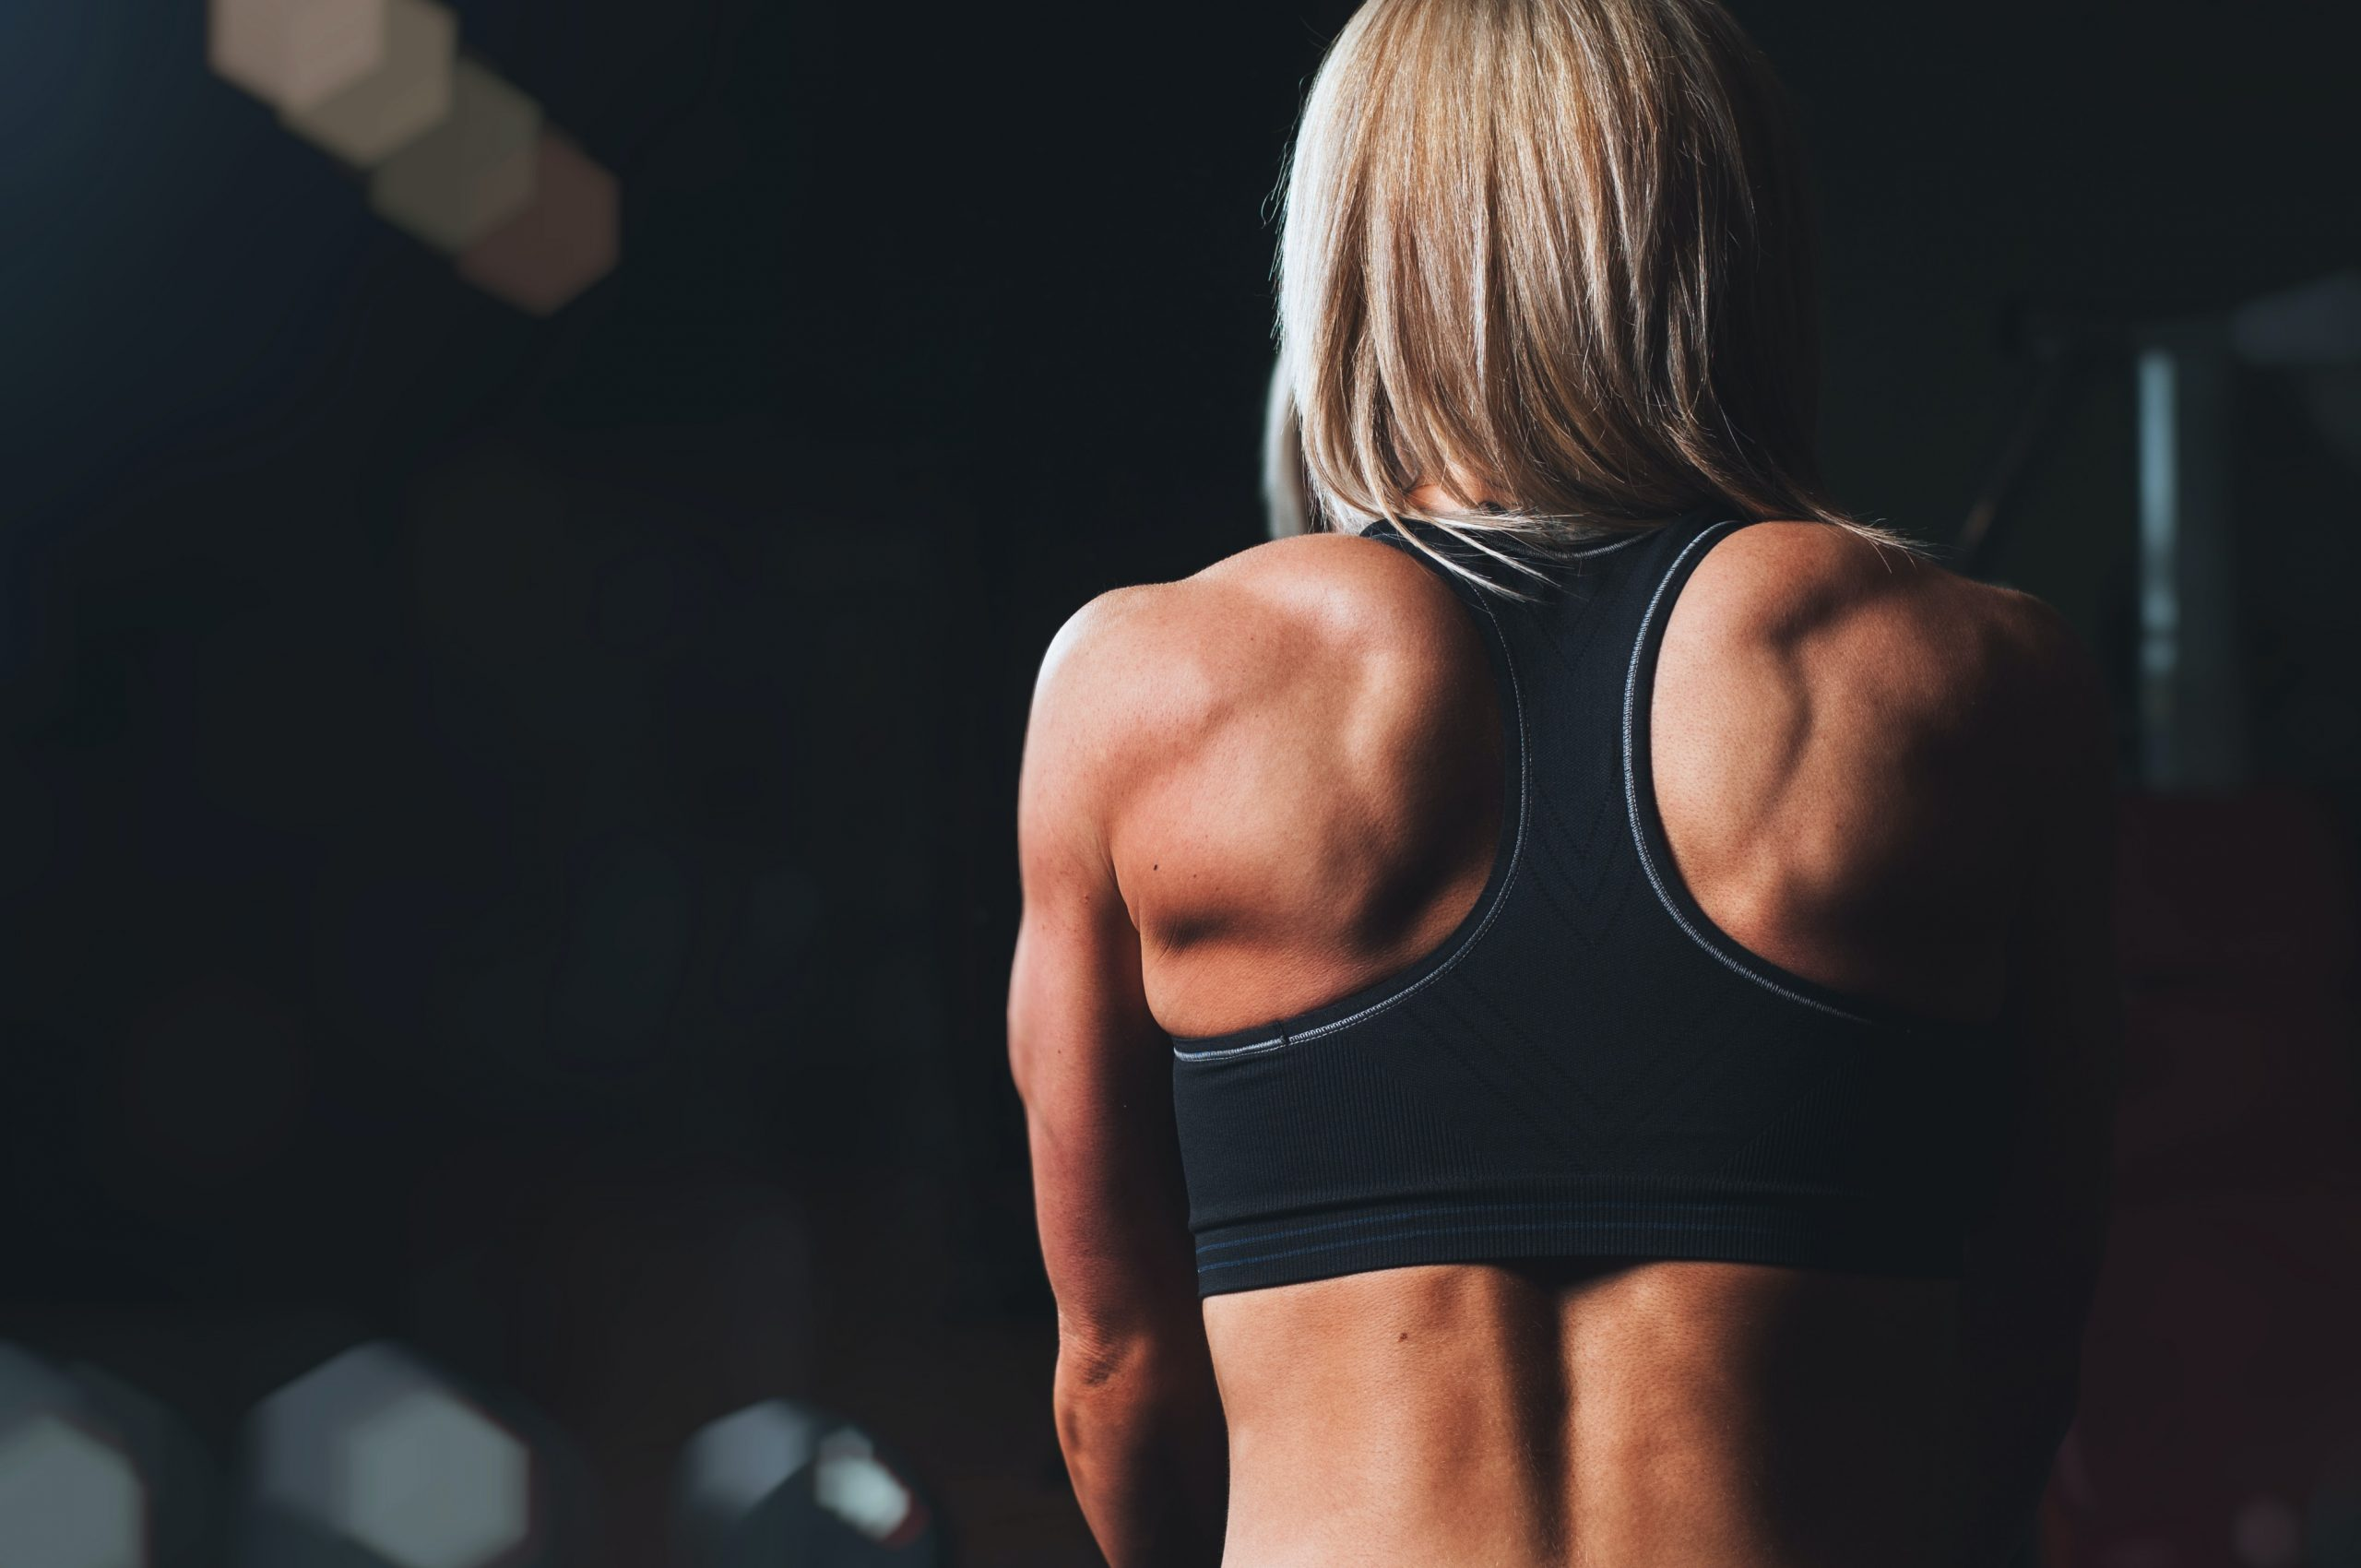 A blonde woman working out at the gym